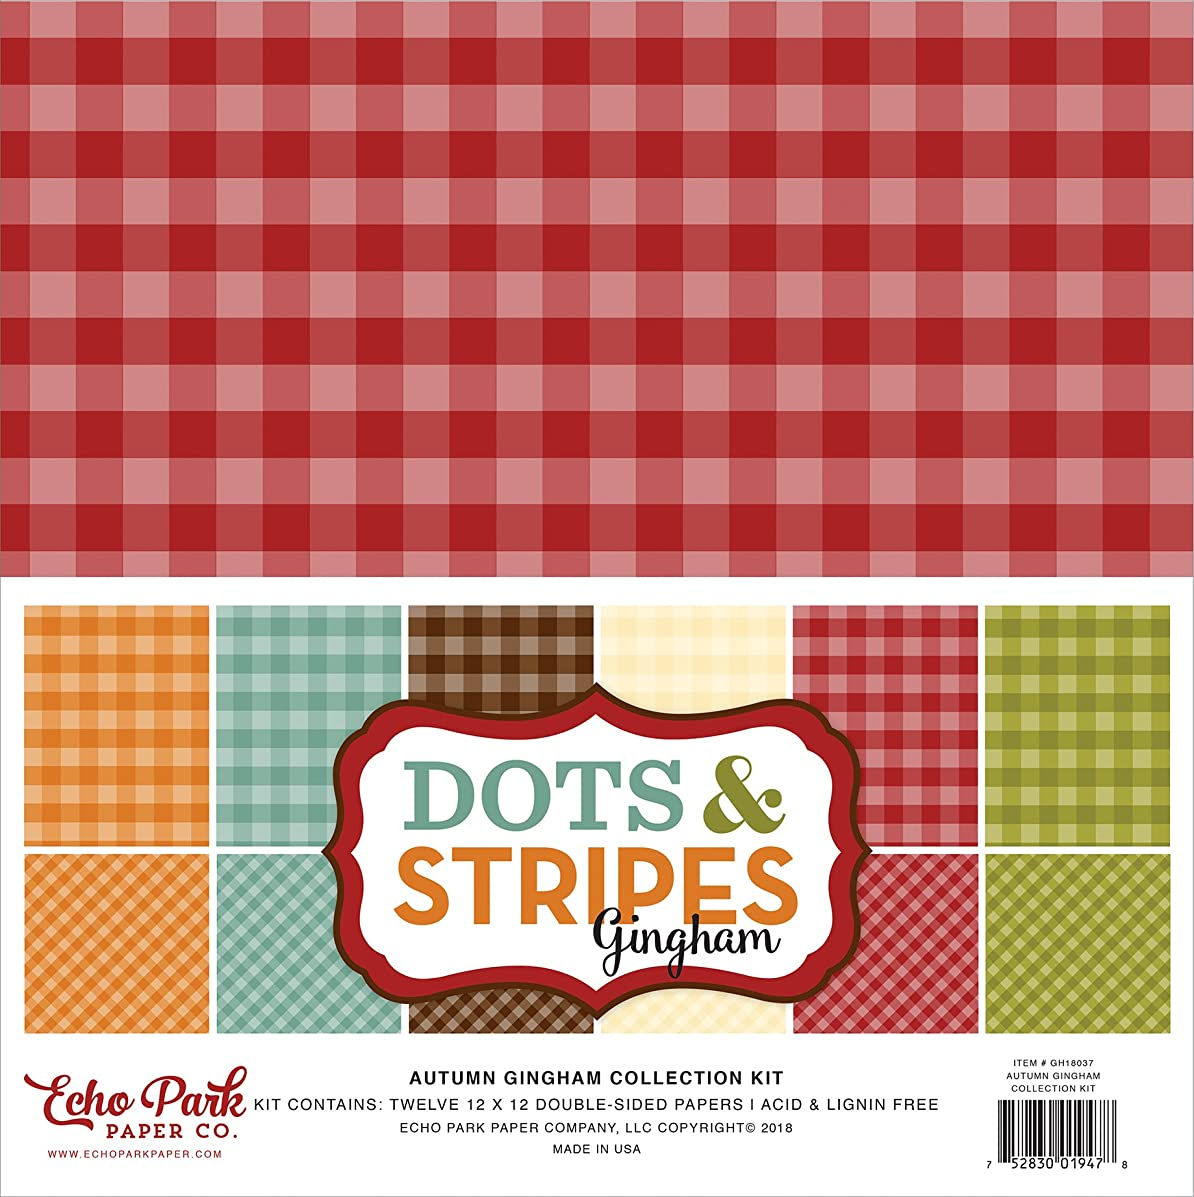 Echo Park Paper Company GH18037 Autumn Gingham Collection Kit Paper, Orange, Yellow, Blue, Brown, Tan, Red